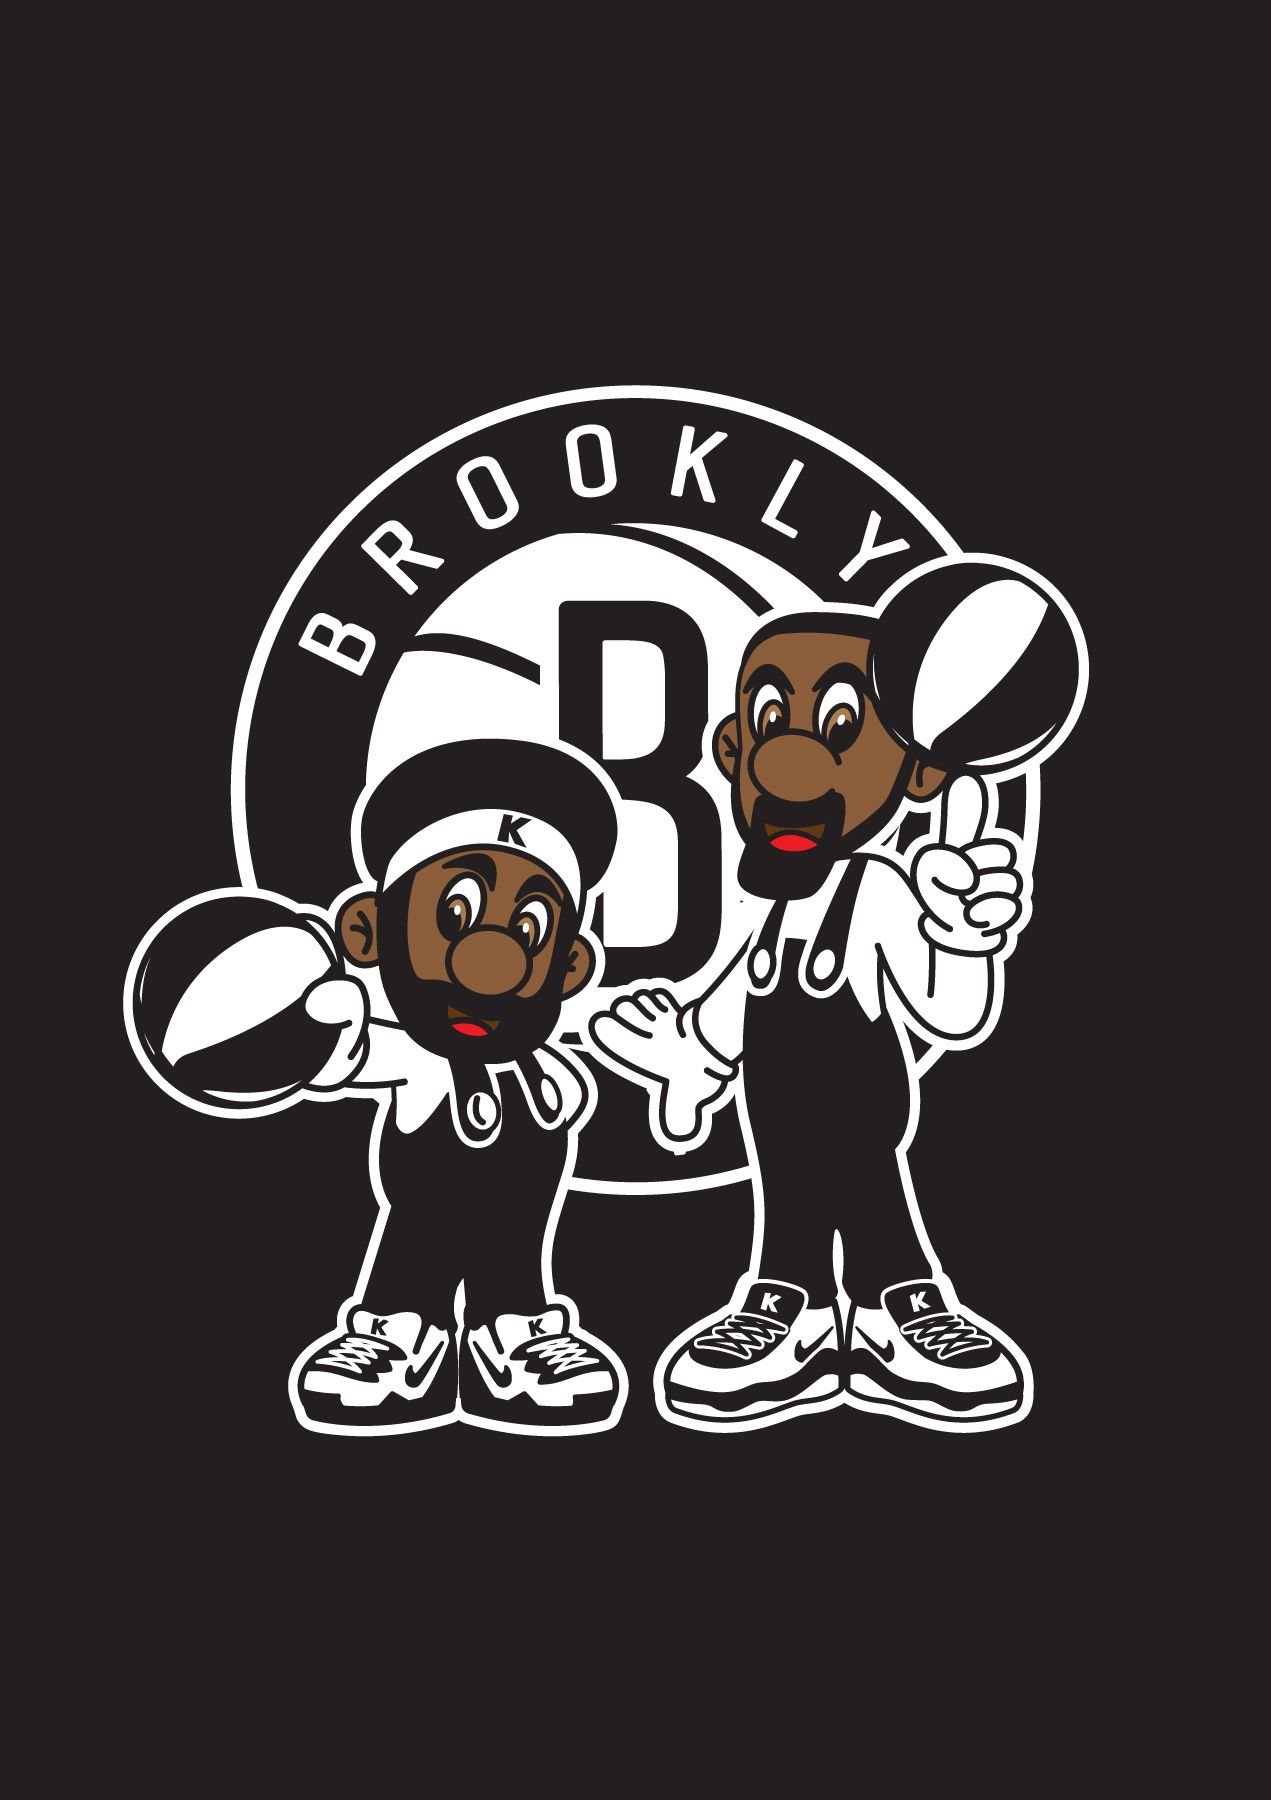 kevin durant kyrie irving brooklyn nets